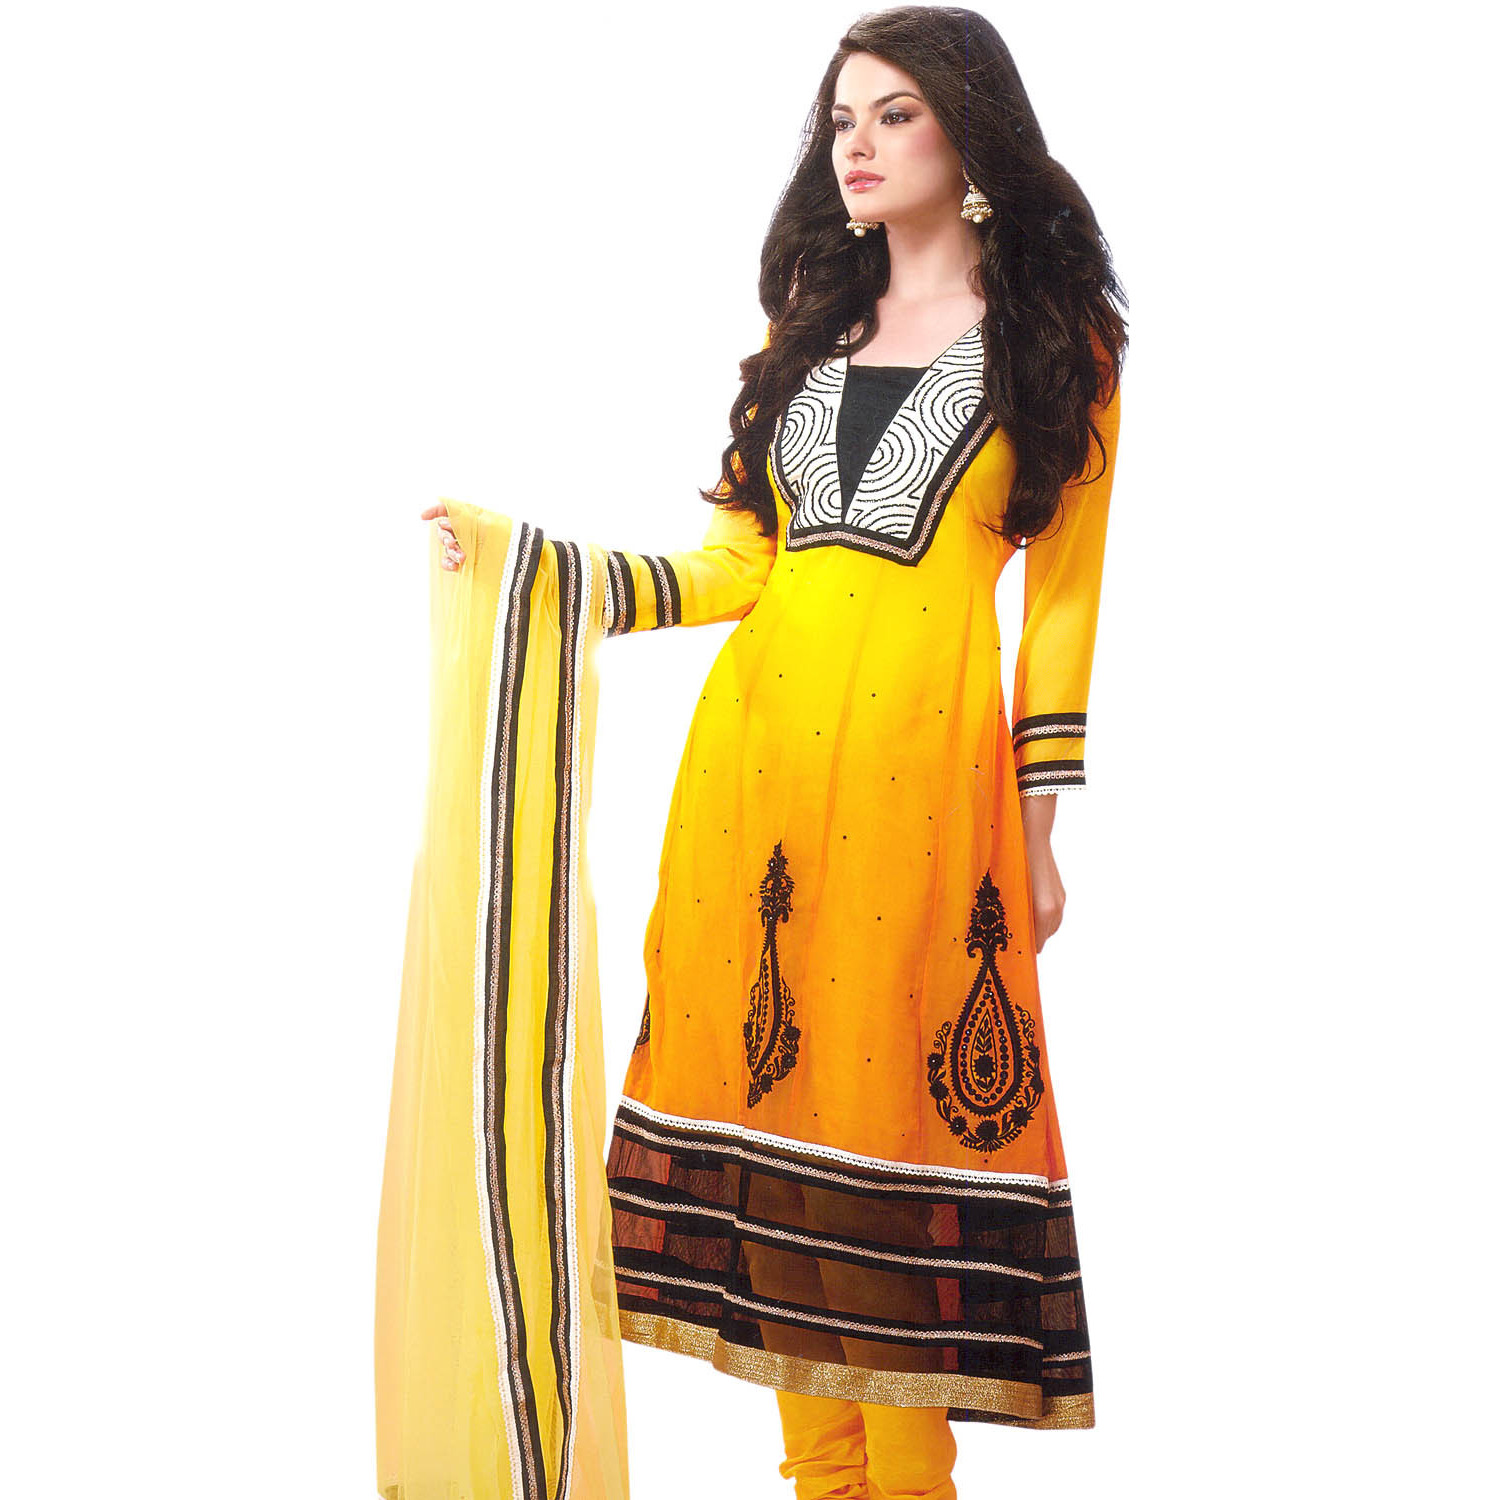 Citrus-Yellow Choodidaar Kameez Suit with All-Over Sequins and Gota Border